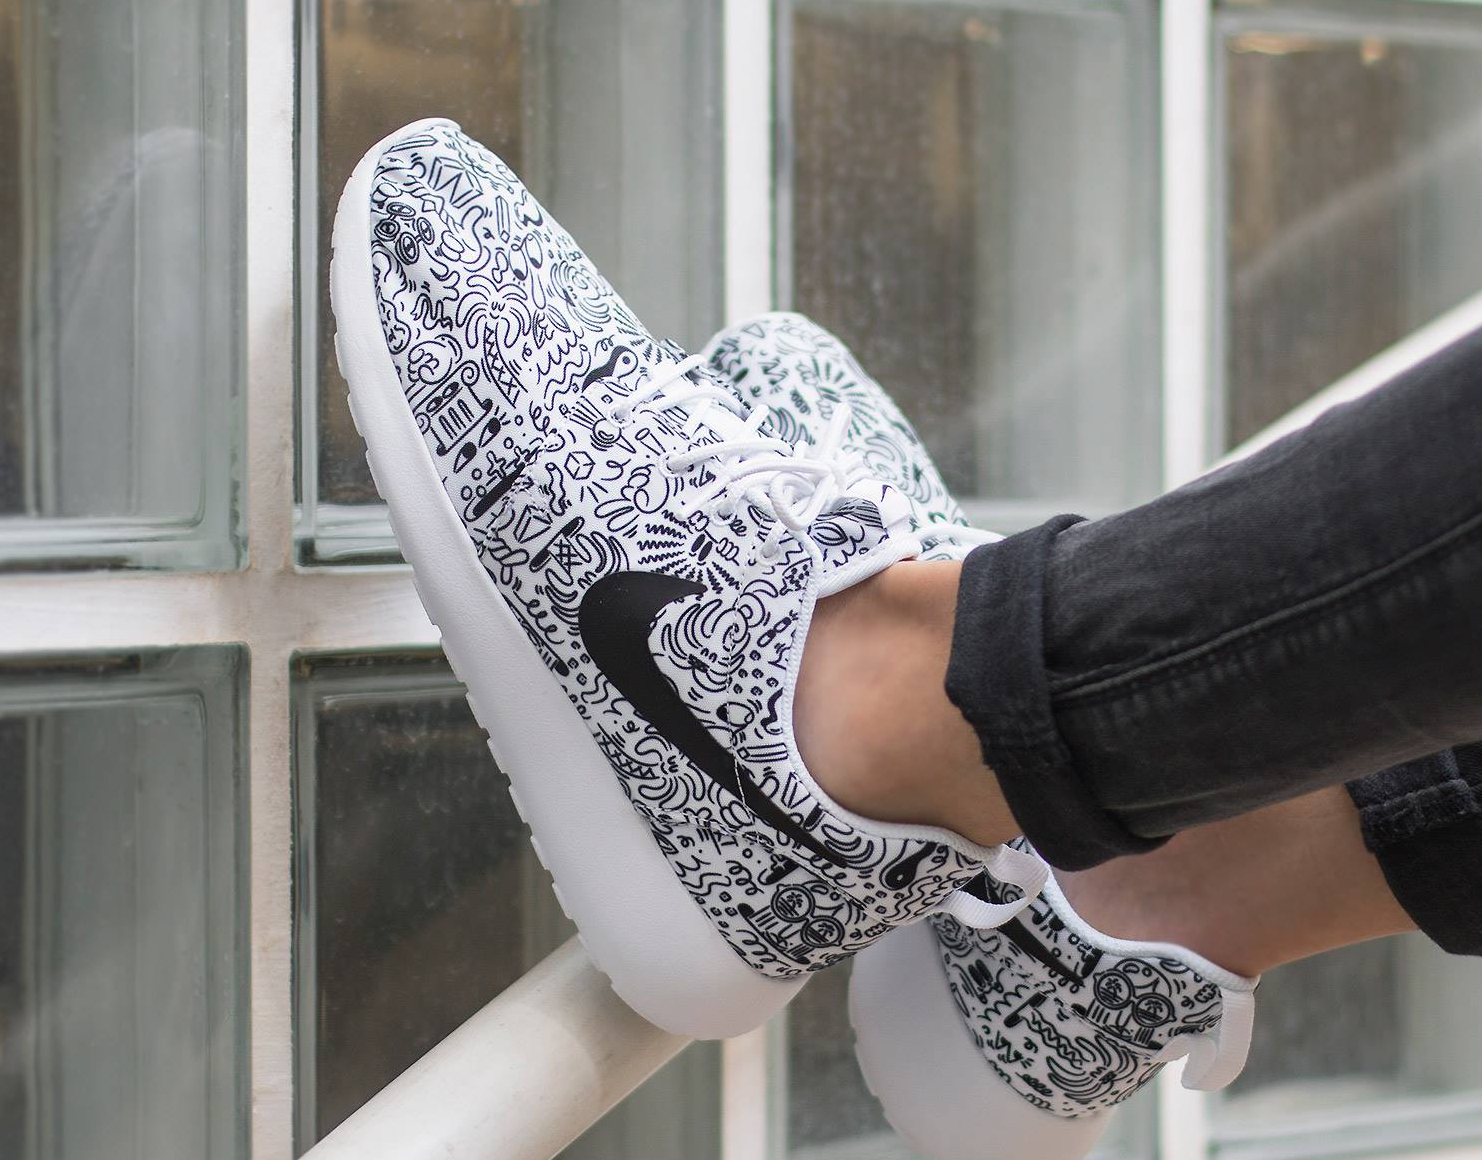 Basket Steven Harrington x Nike Roshe Run Print 'Doodle' (5)